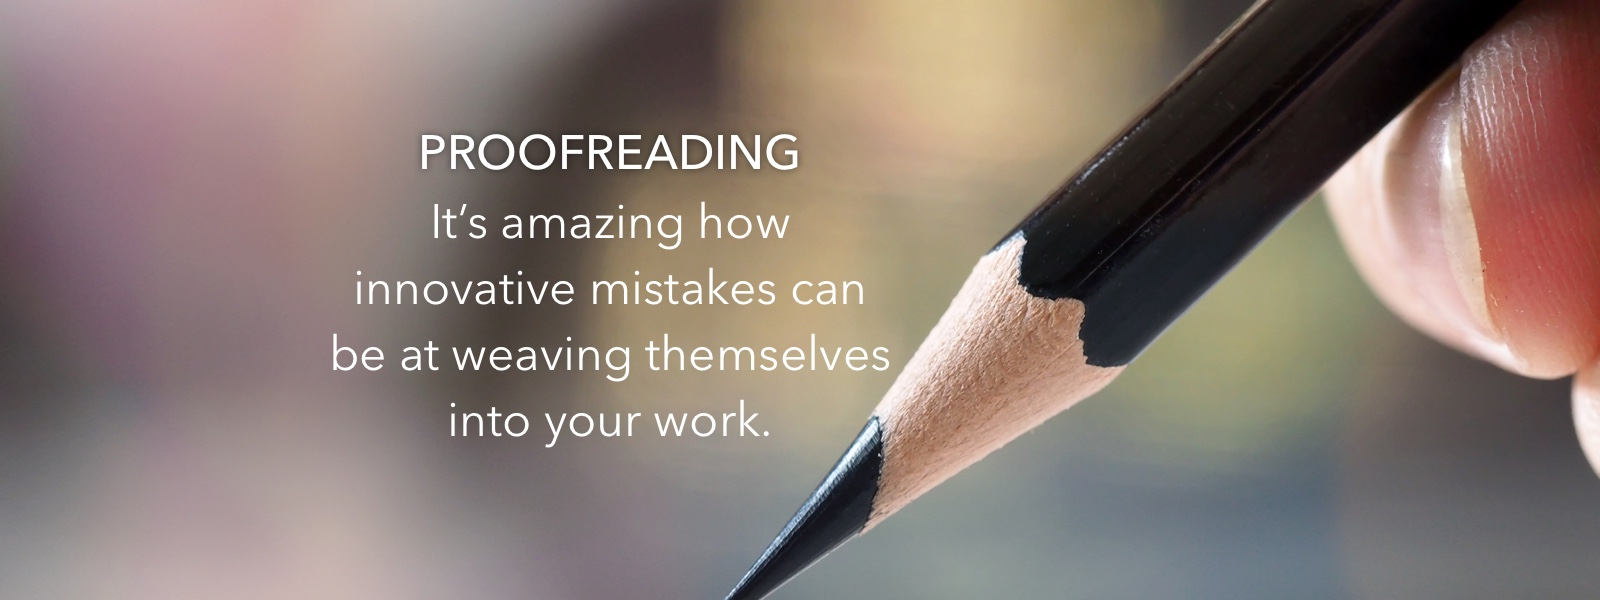 Pencil for proofreading